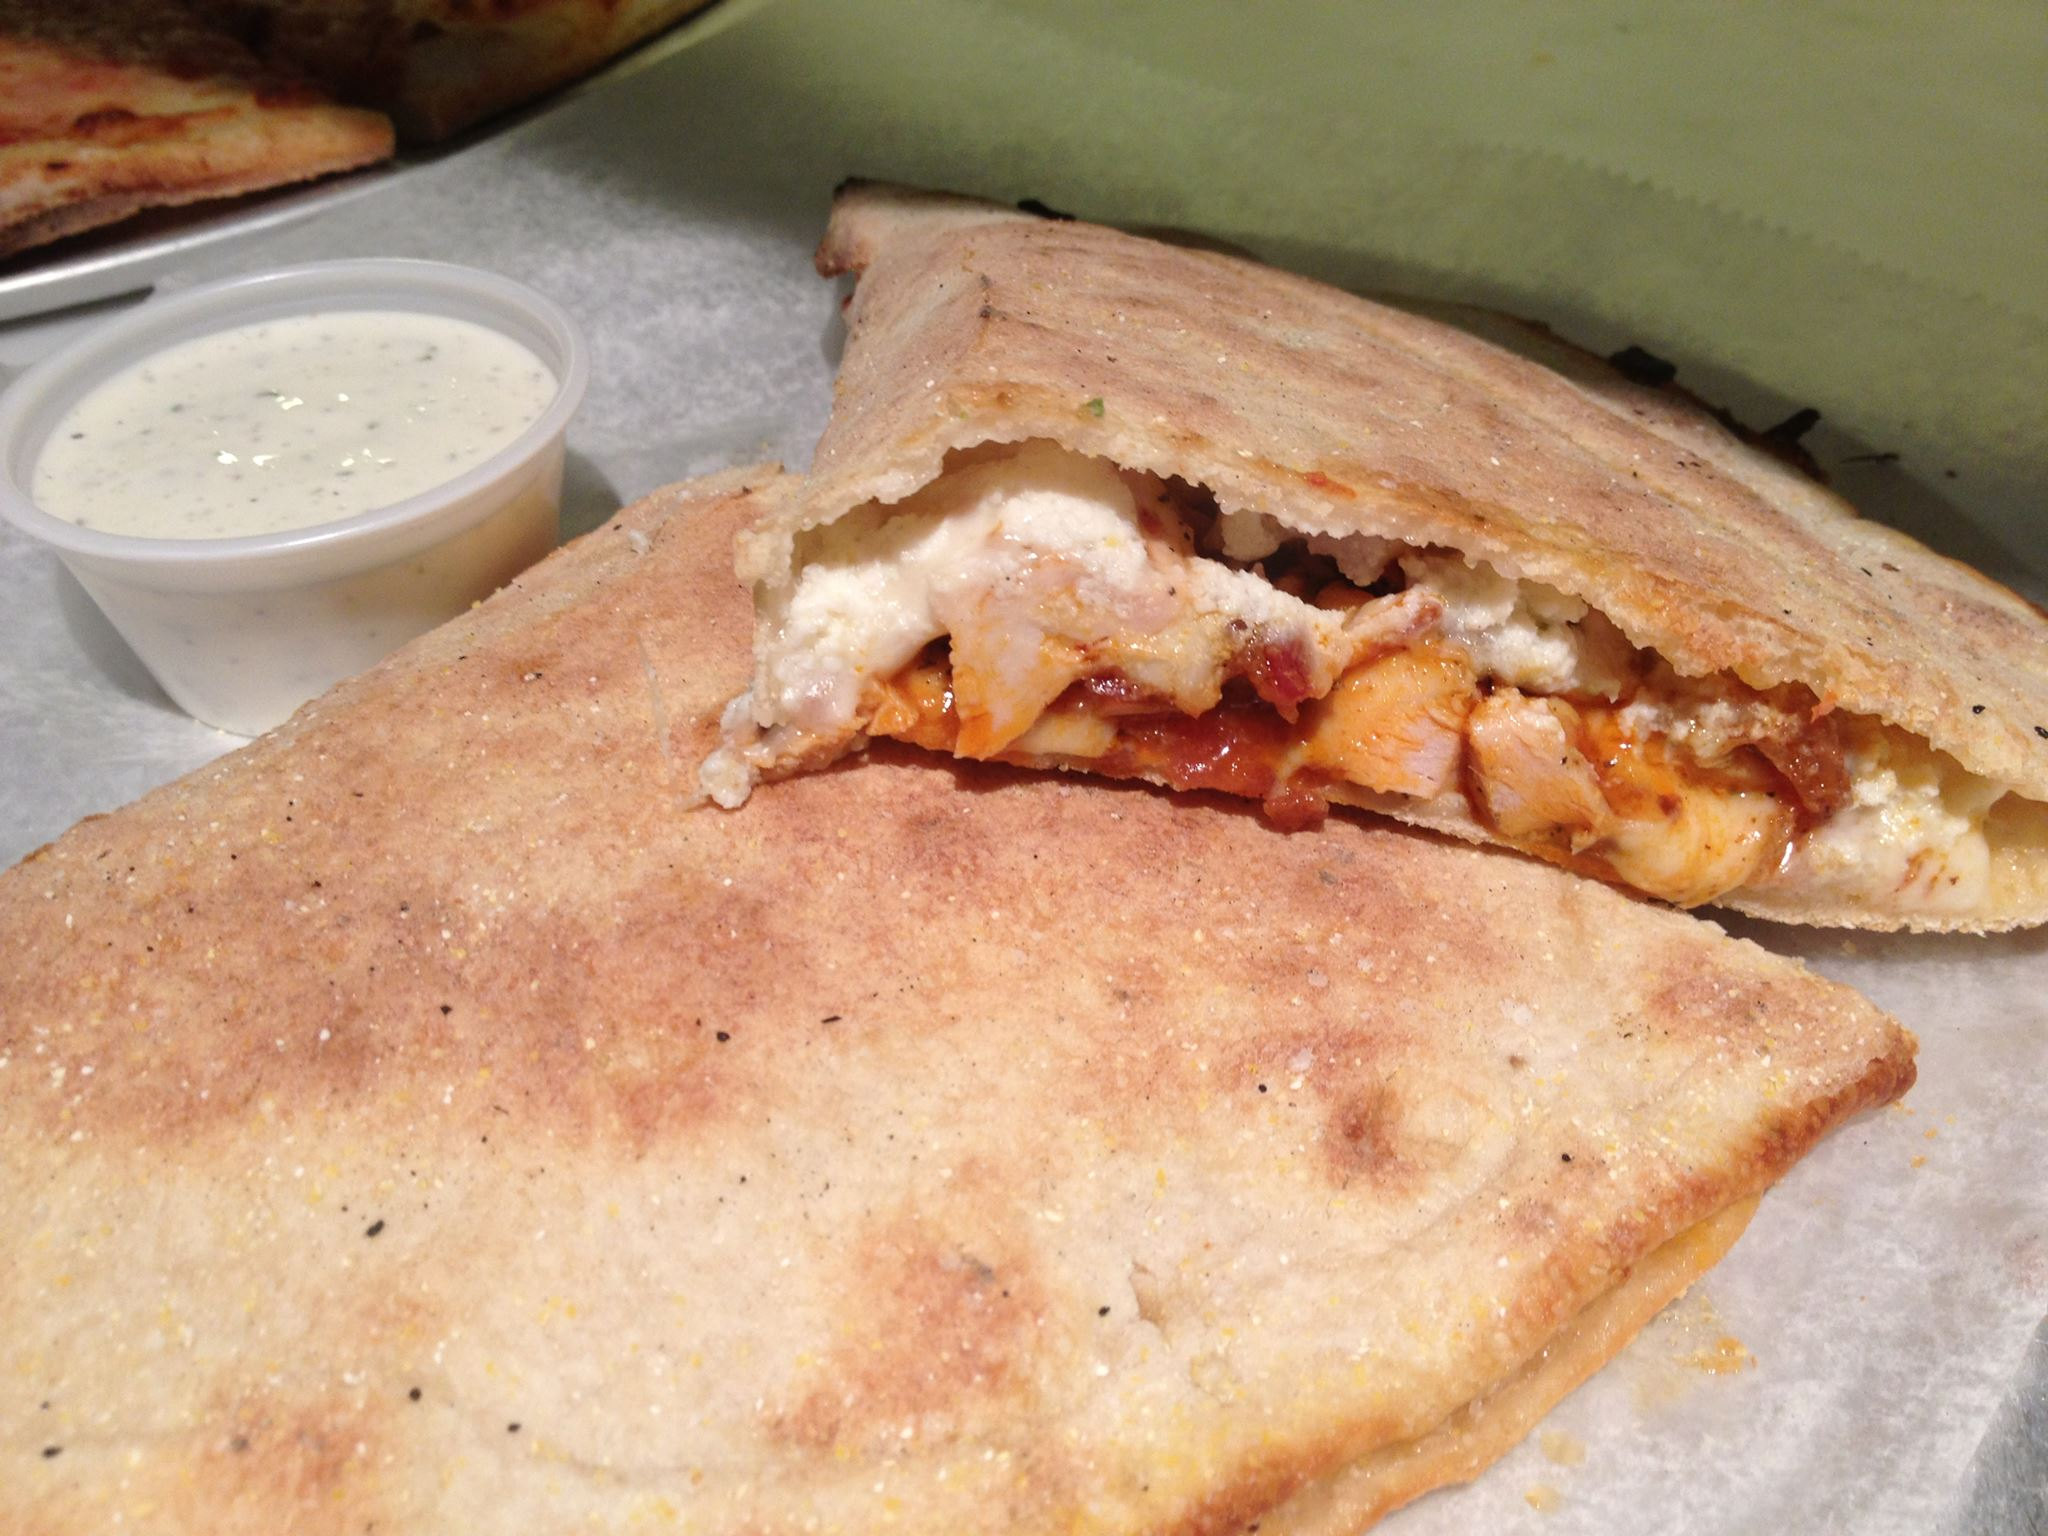 Wrap with meat and cheese